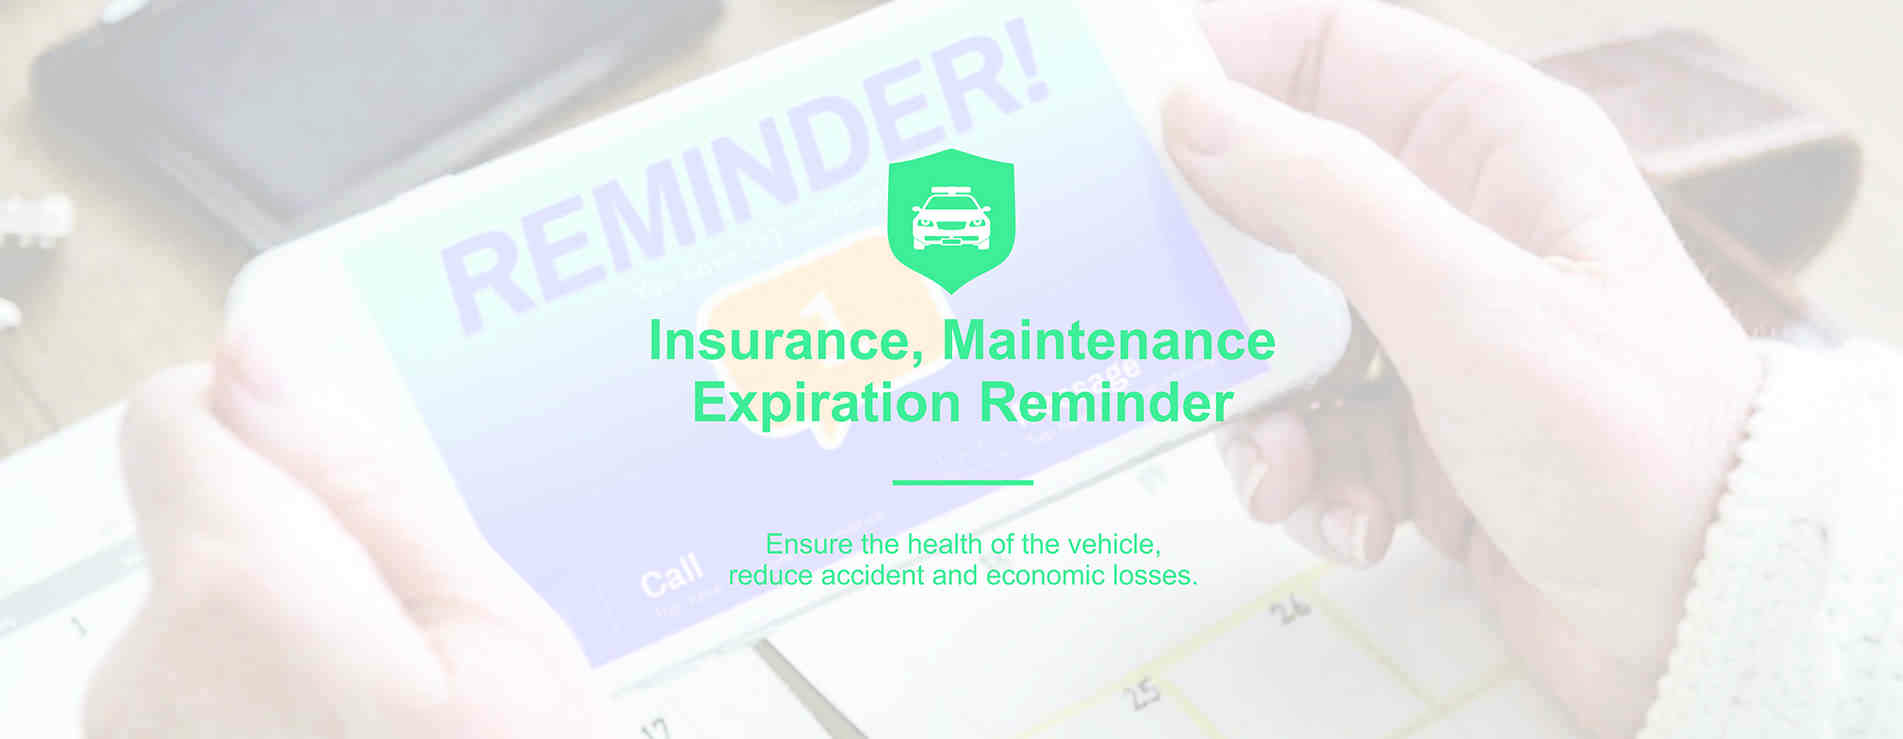 insurance and maintenance expiration reminder